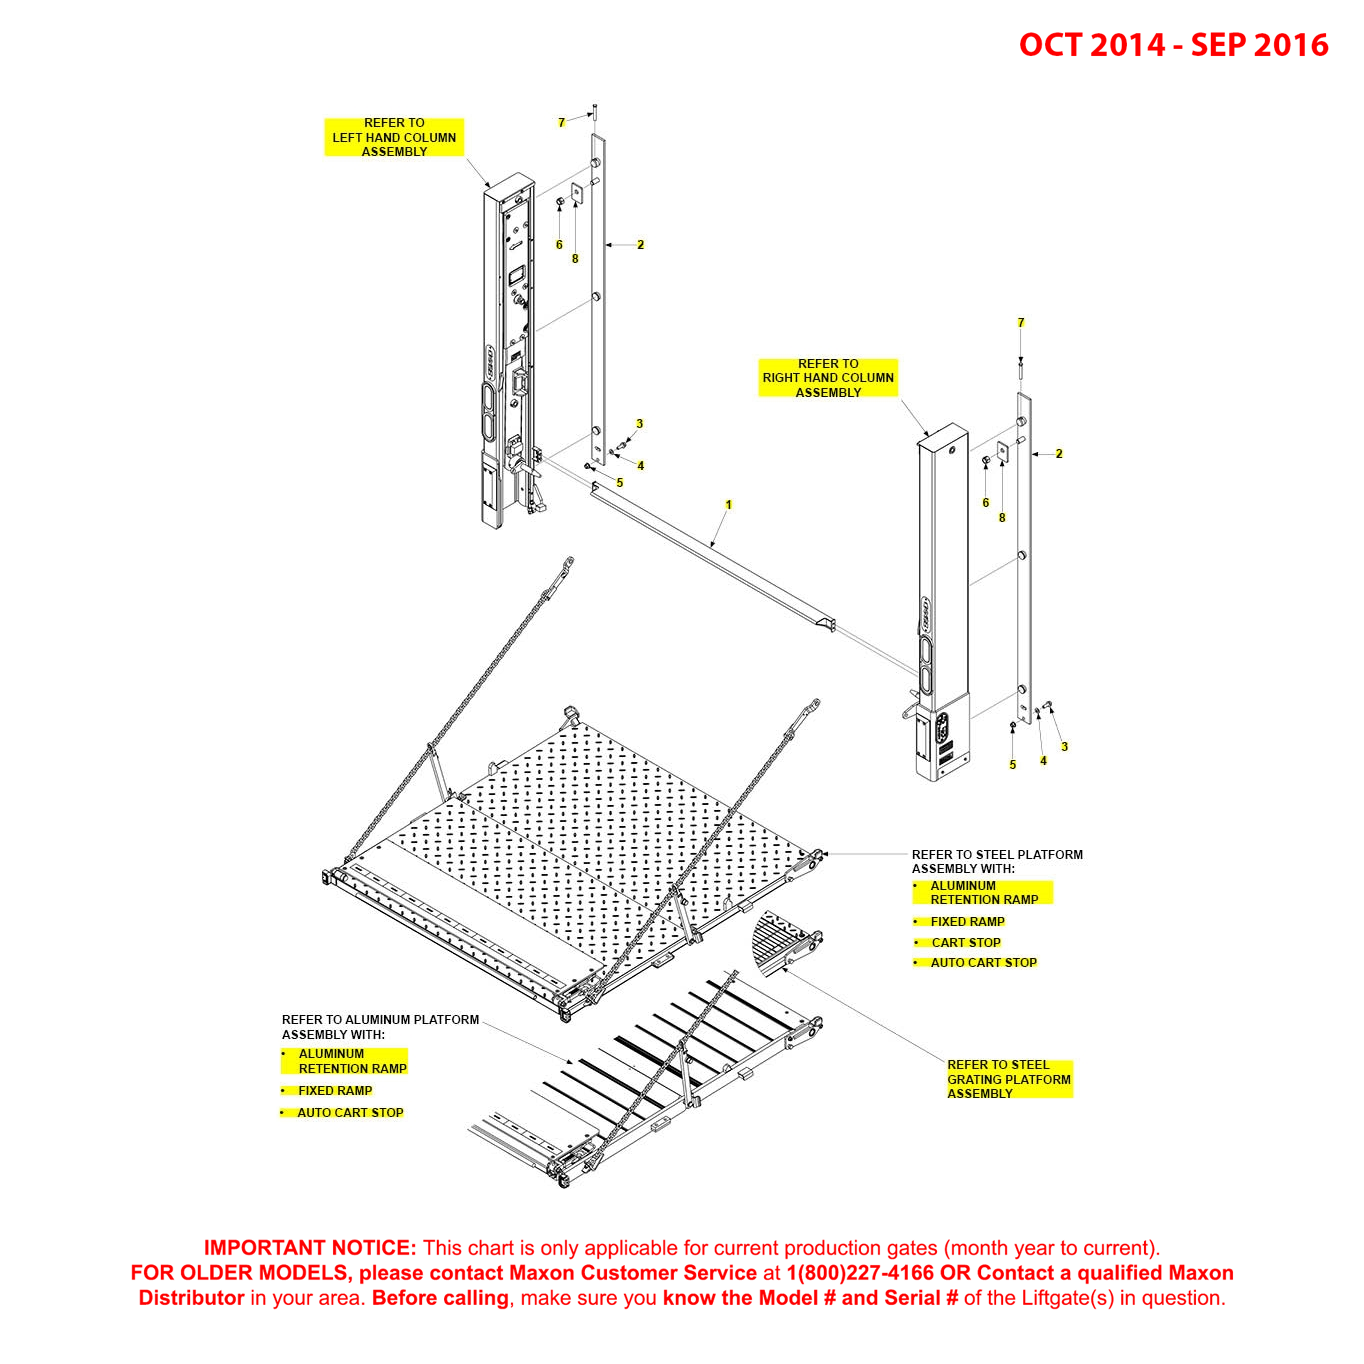 BMR (Oct 2014 - Sep 2016) Final Assembly Diagram